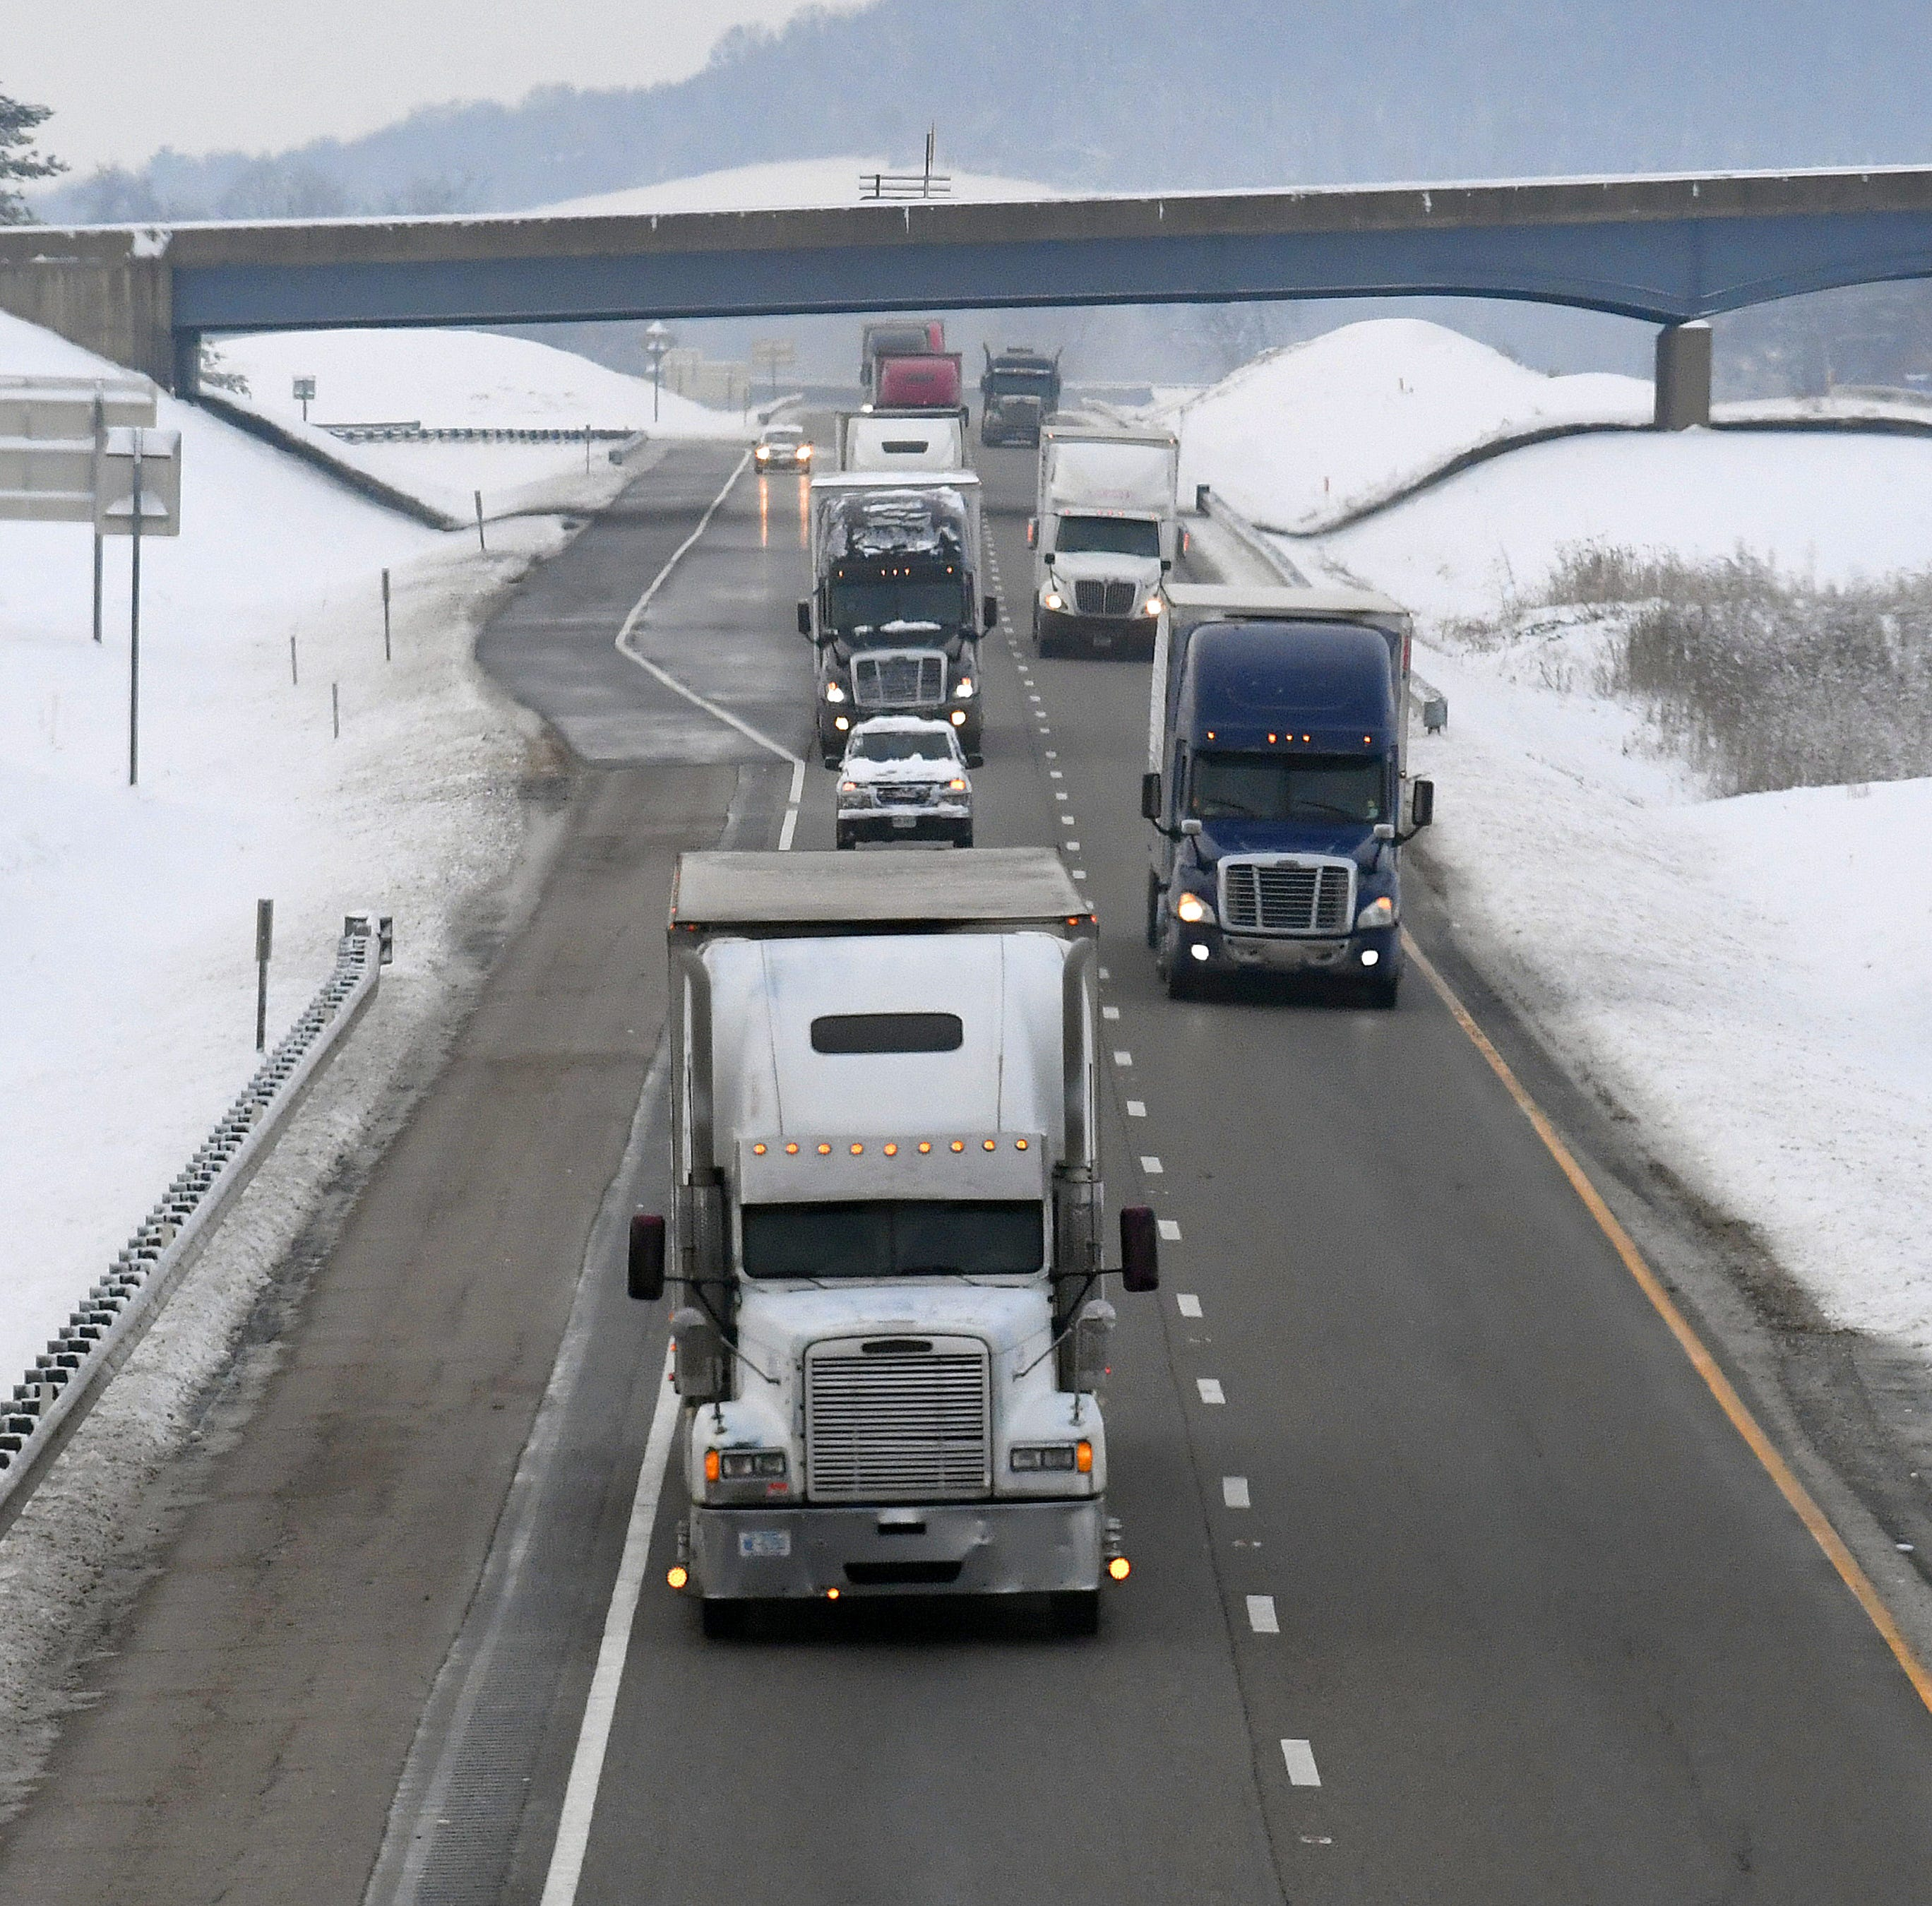 Tolling isn't a done deal, nor will it adequately address how substandard Interstate 81 really is